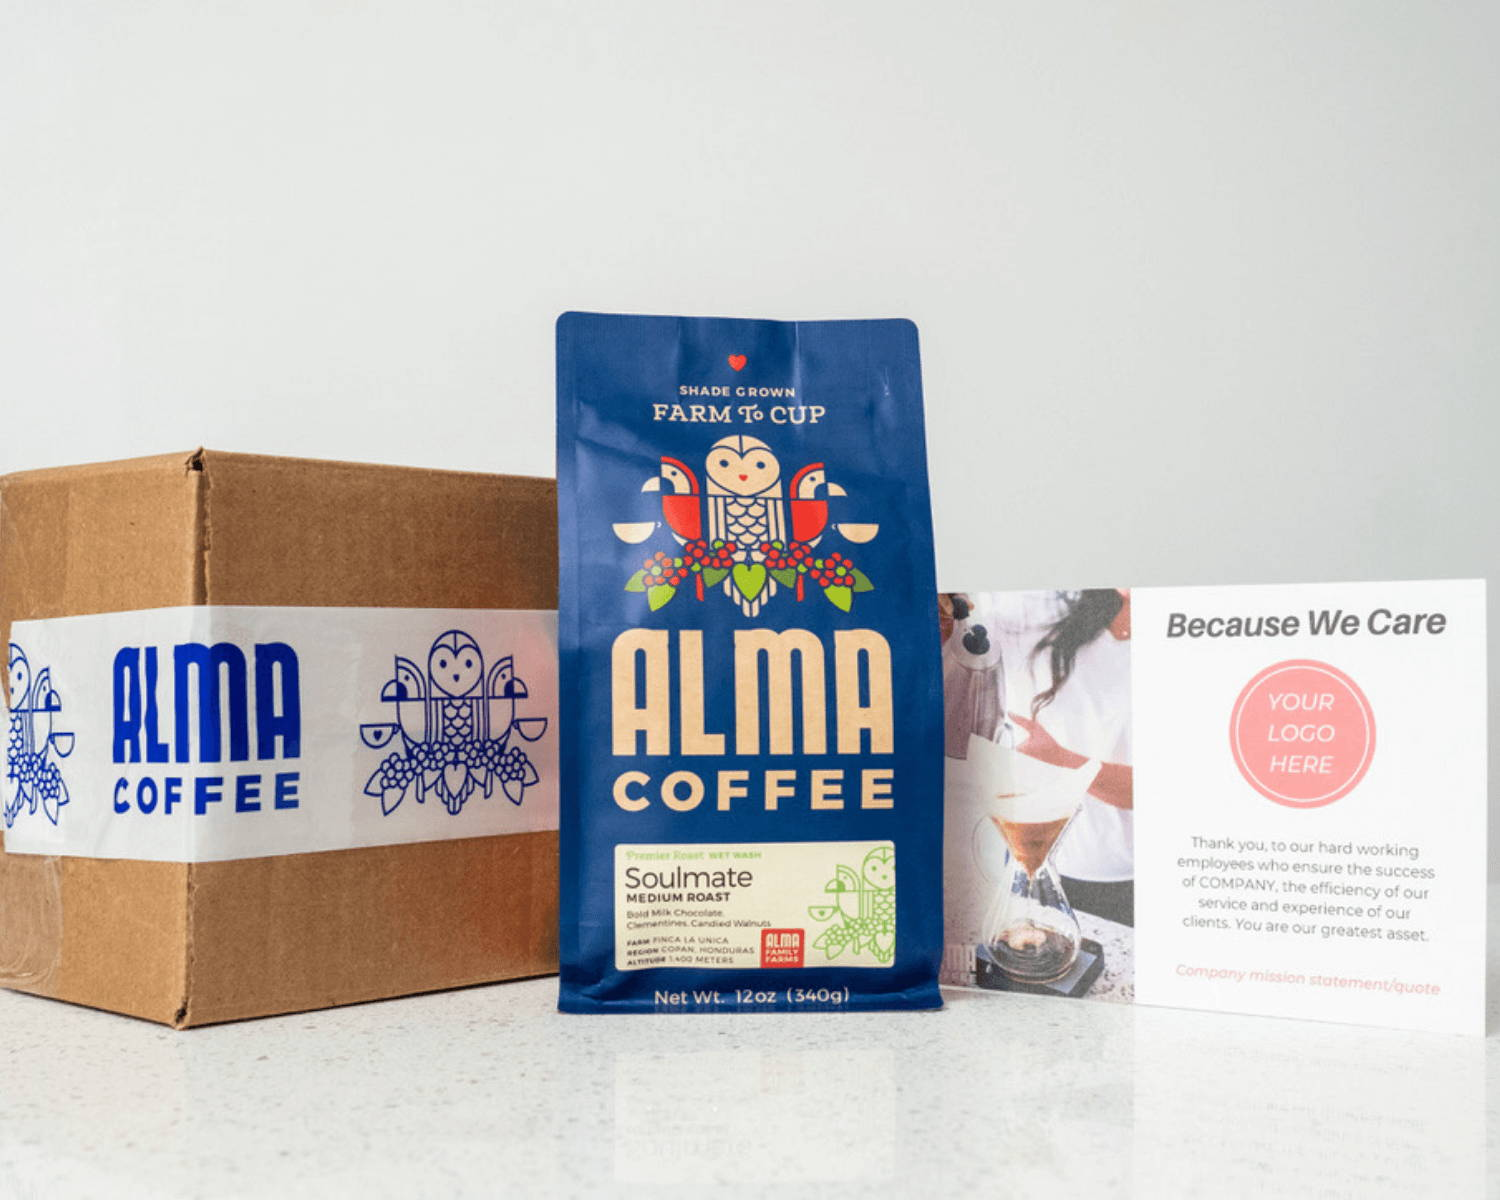 Corporate coffee gifts by Alma Coffee